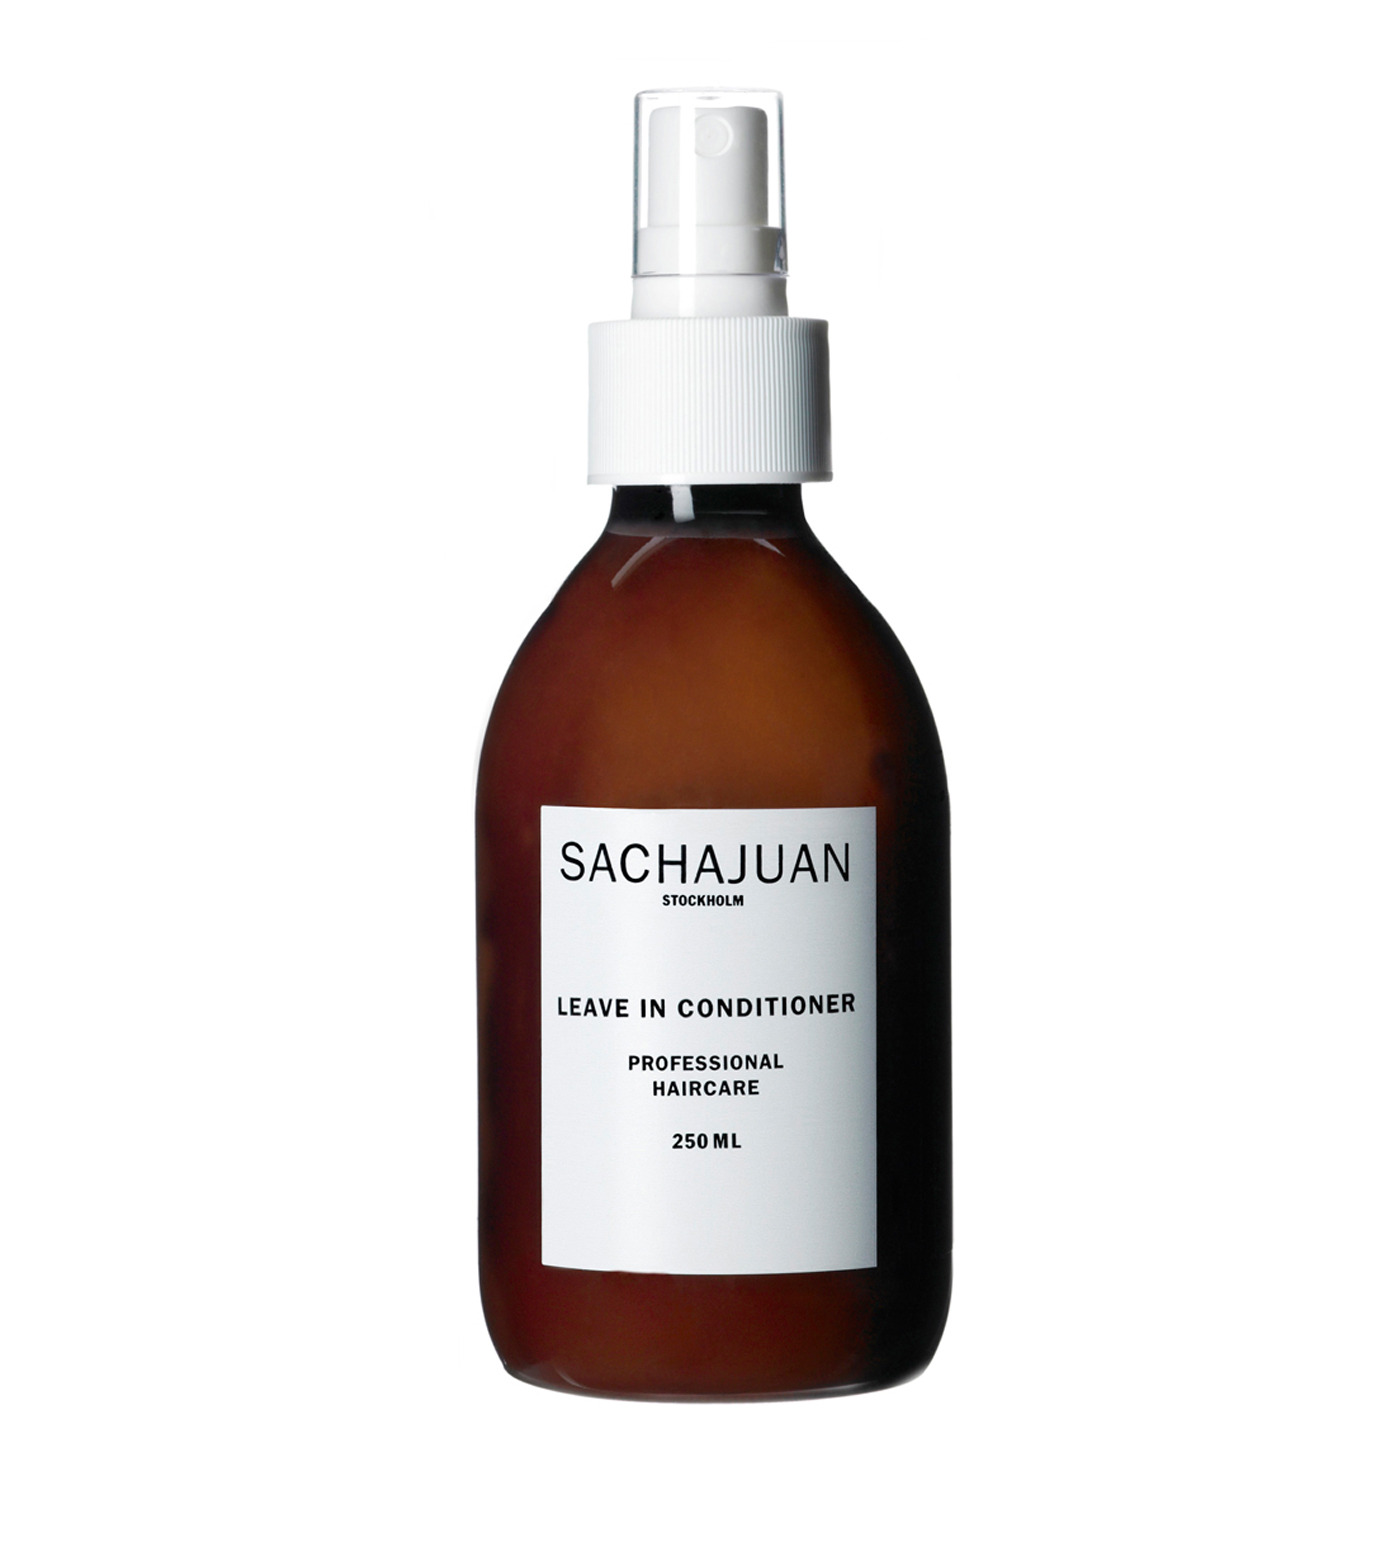 SACHAJUAN(サシャワン)のLeave in Conditioner 250ml-WHITE(HAIR-CARE/HAIR-CARE)-106-4 拡大詳細画像1